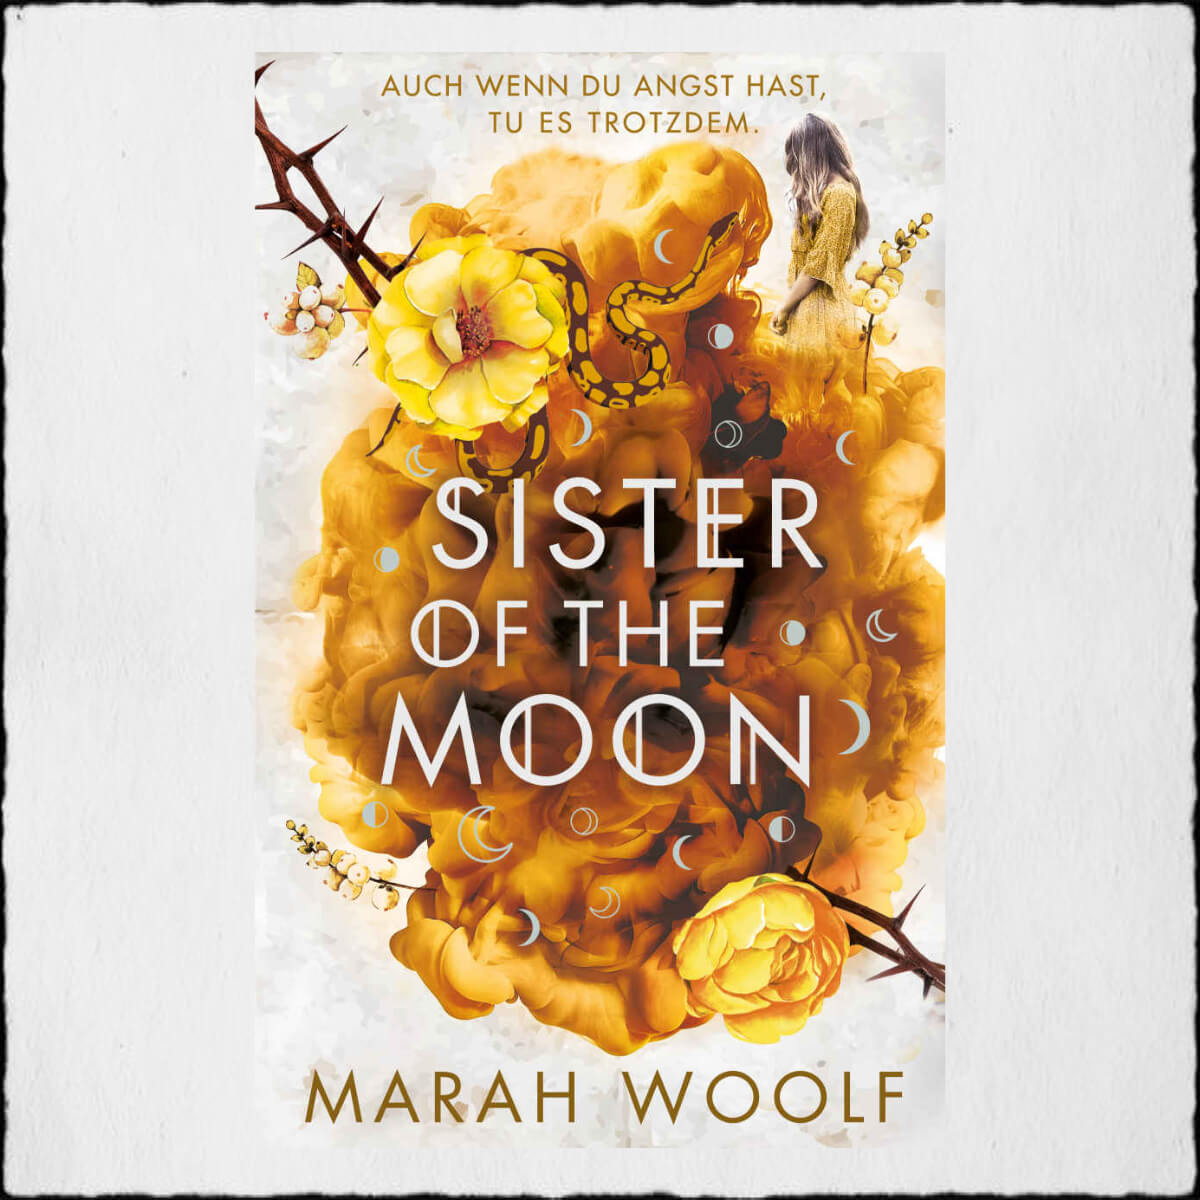 "Marah Woolf ""Sister of the Moon - HexenSchwesternSaga 2"" © 2020 Marah Woolf in Selbstpublikation"